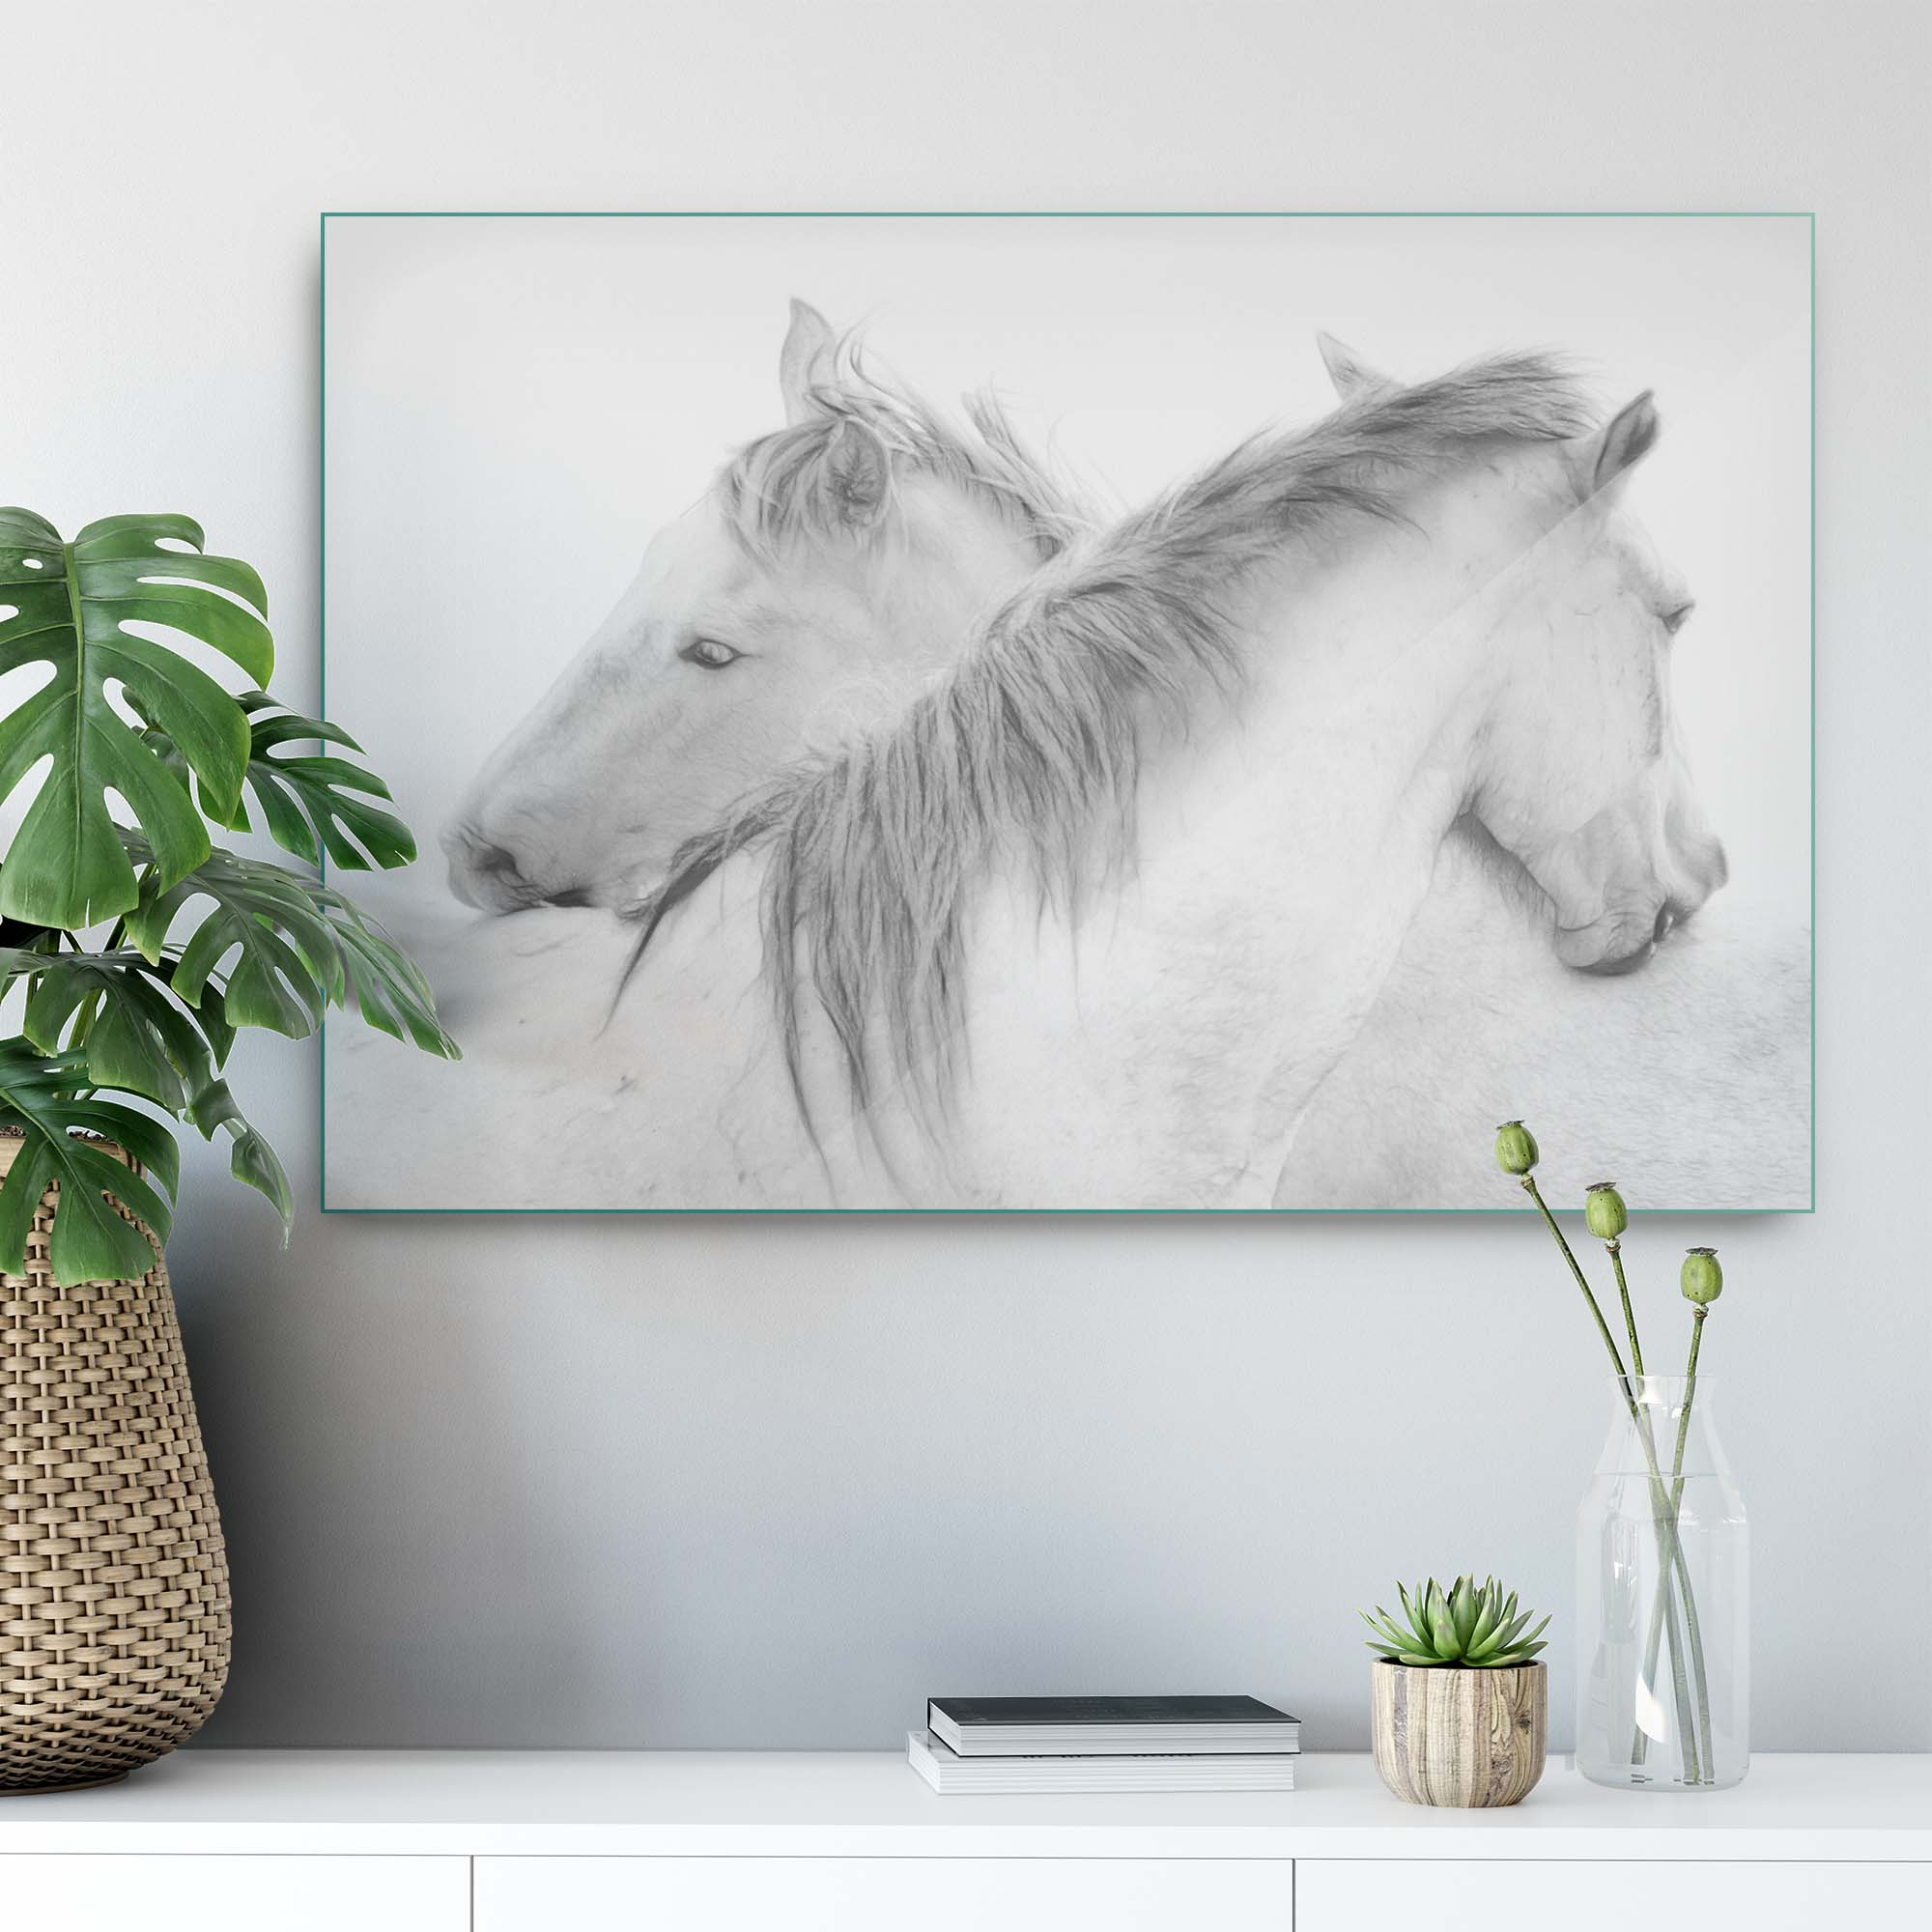 Glass printed Horses hug each other